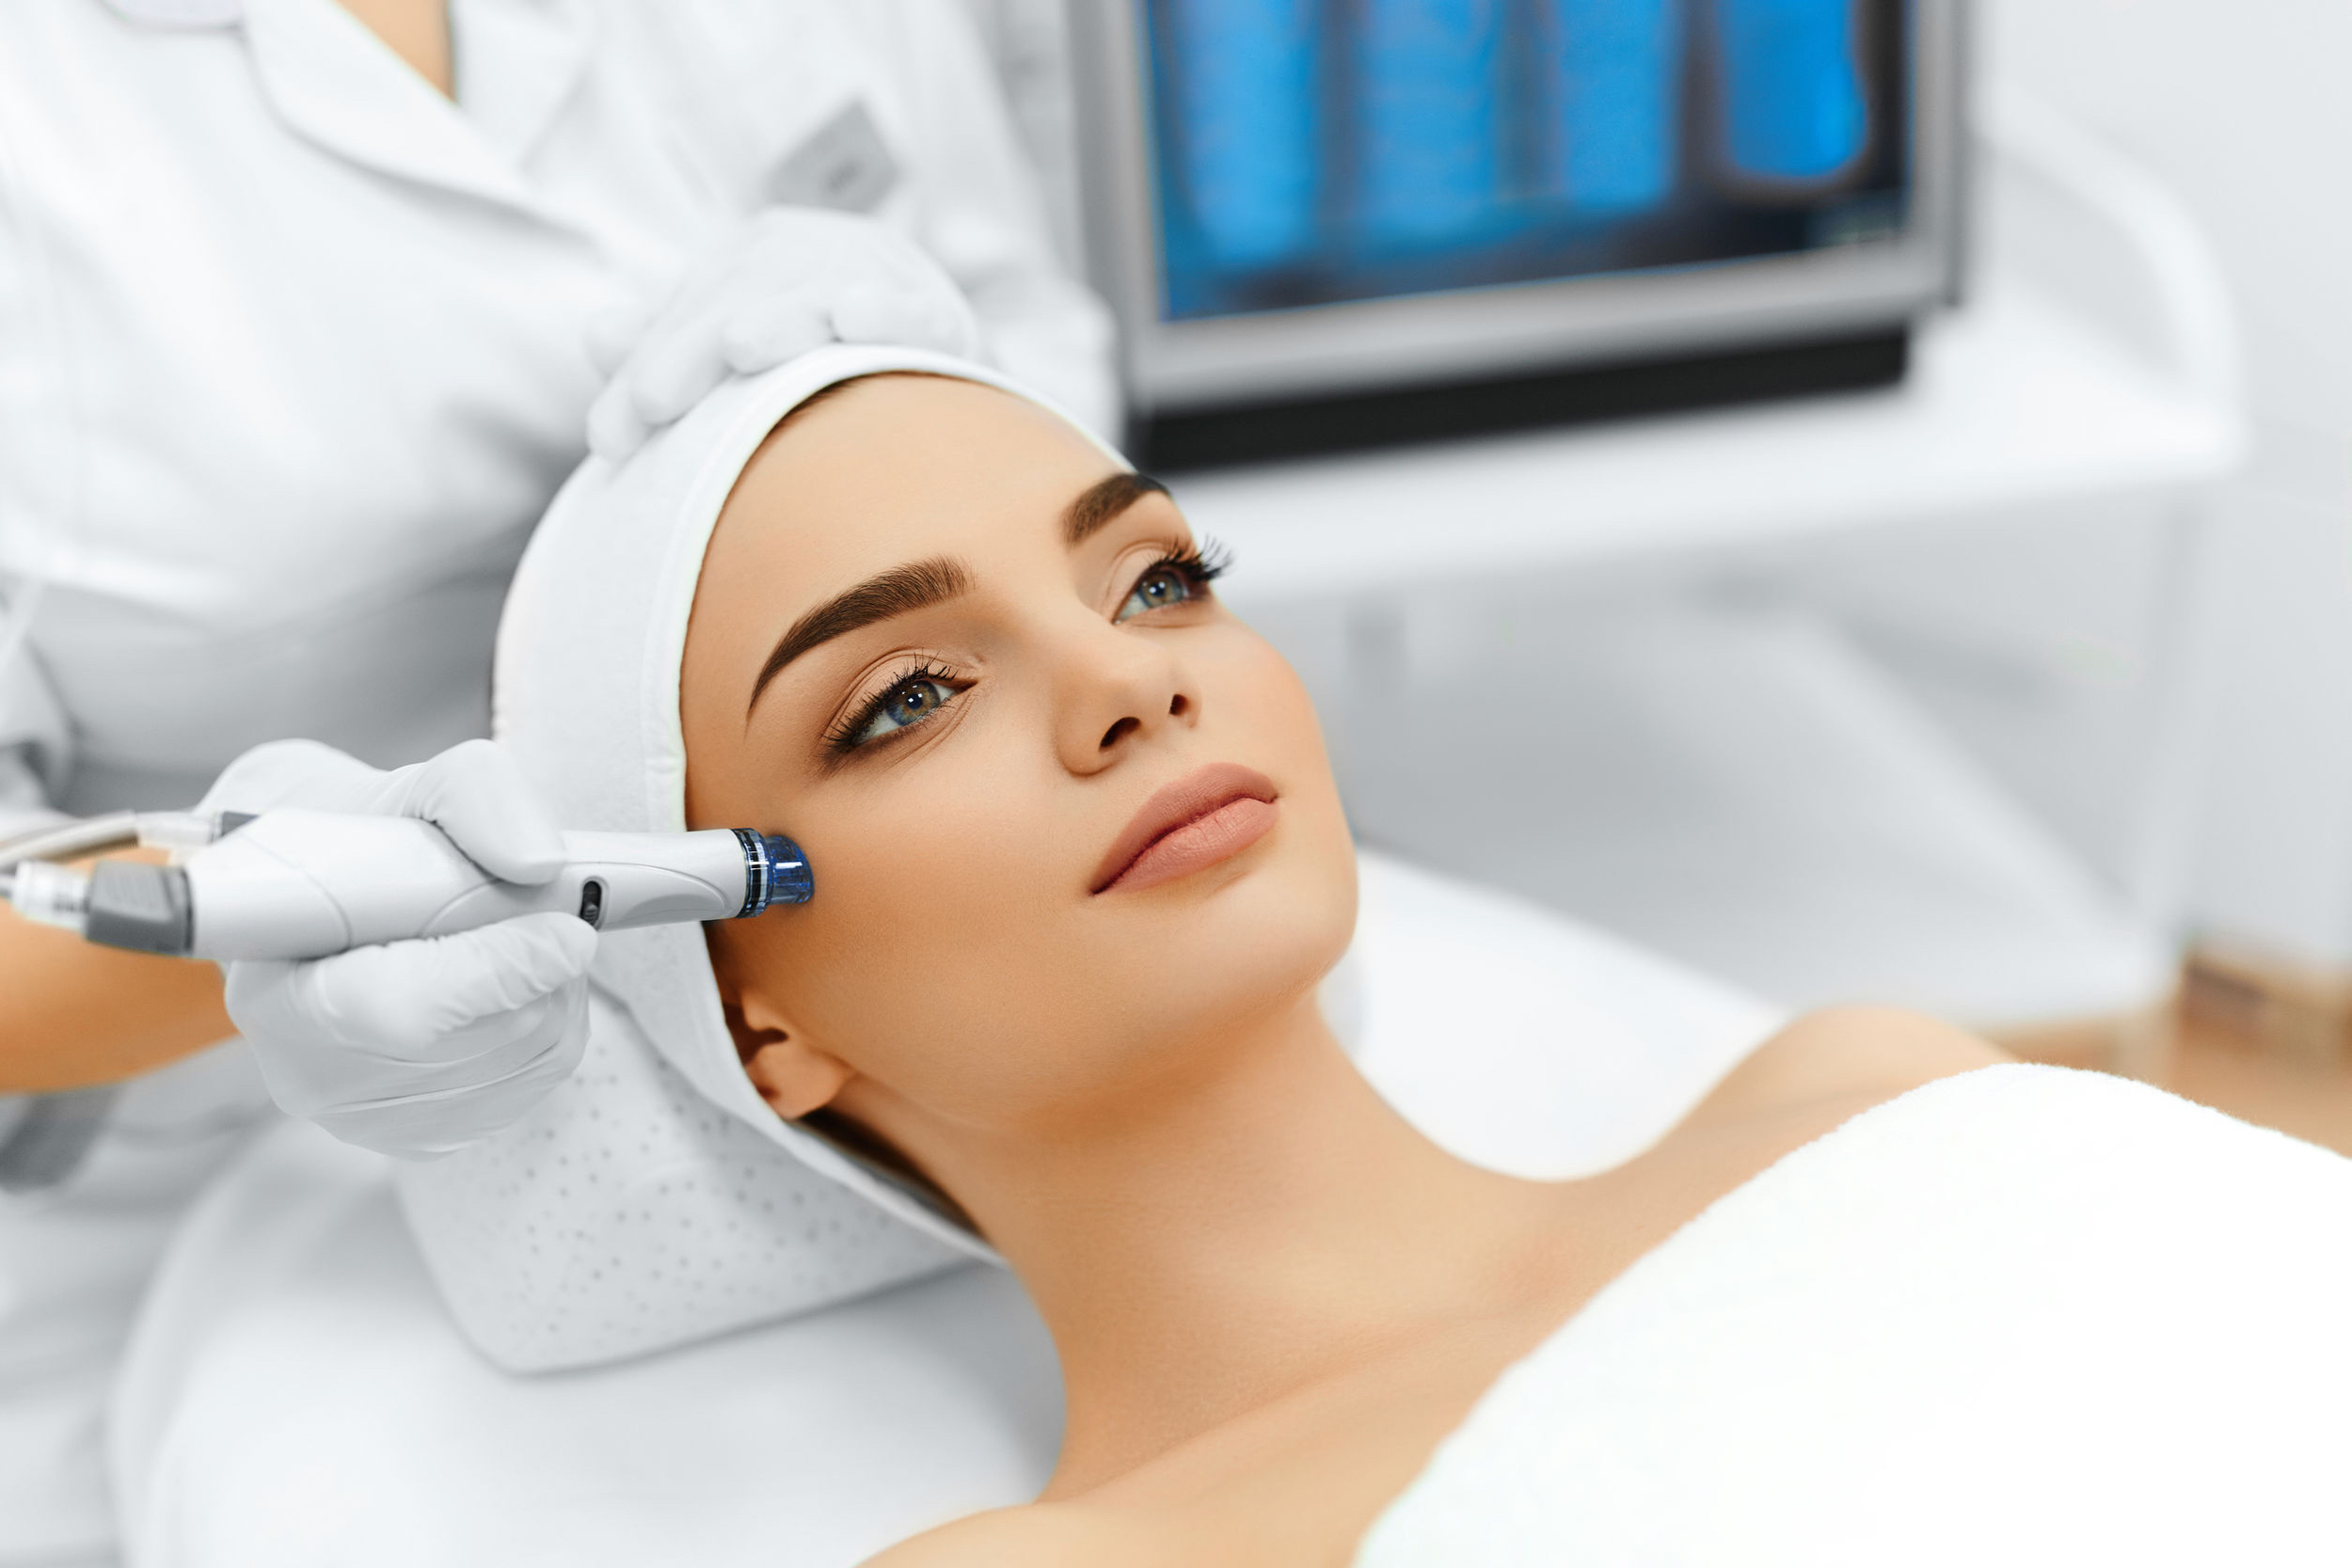 beauty salon, waxing, eyebrow shape, microdermabrasion, hydrodermabrasion, skin needling